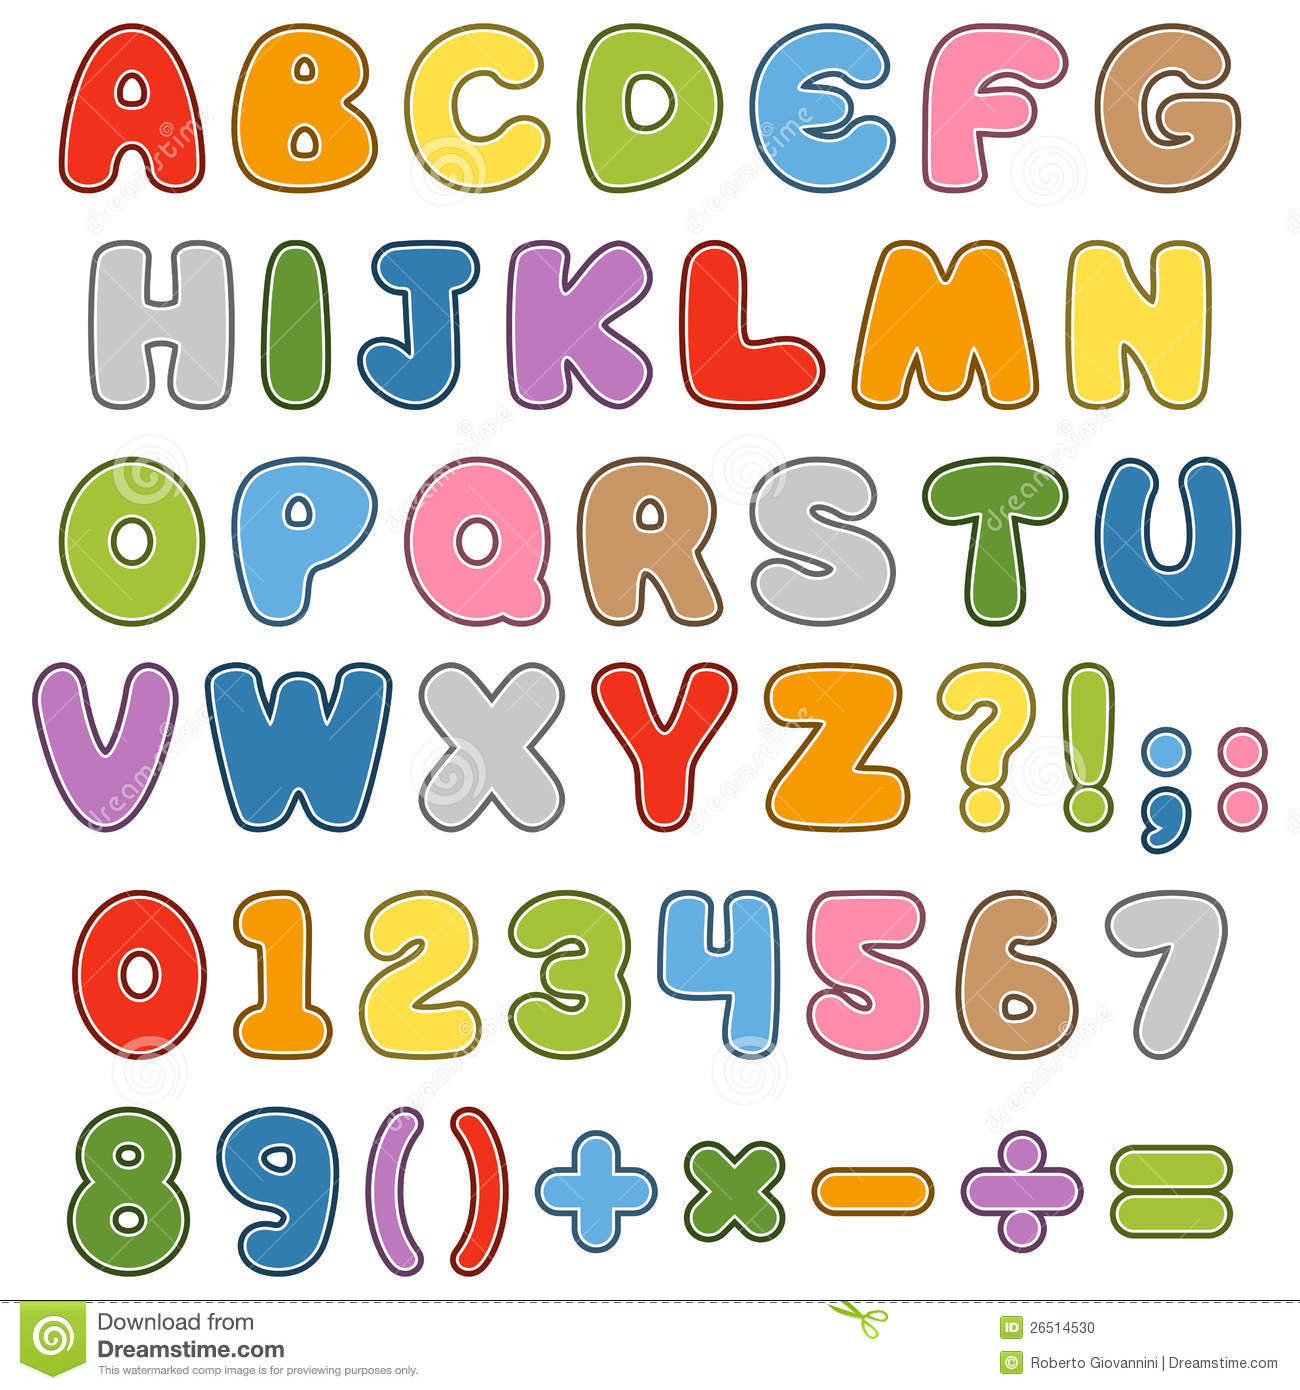 cartoon kids font - Cartoon For Kids Download